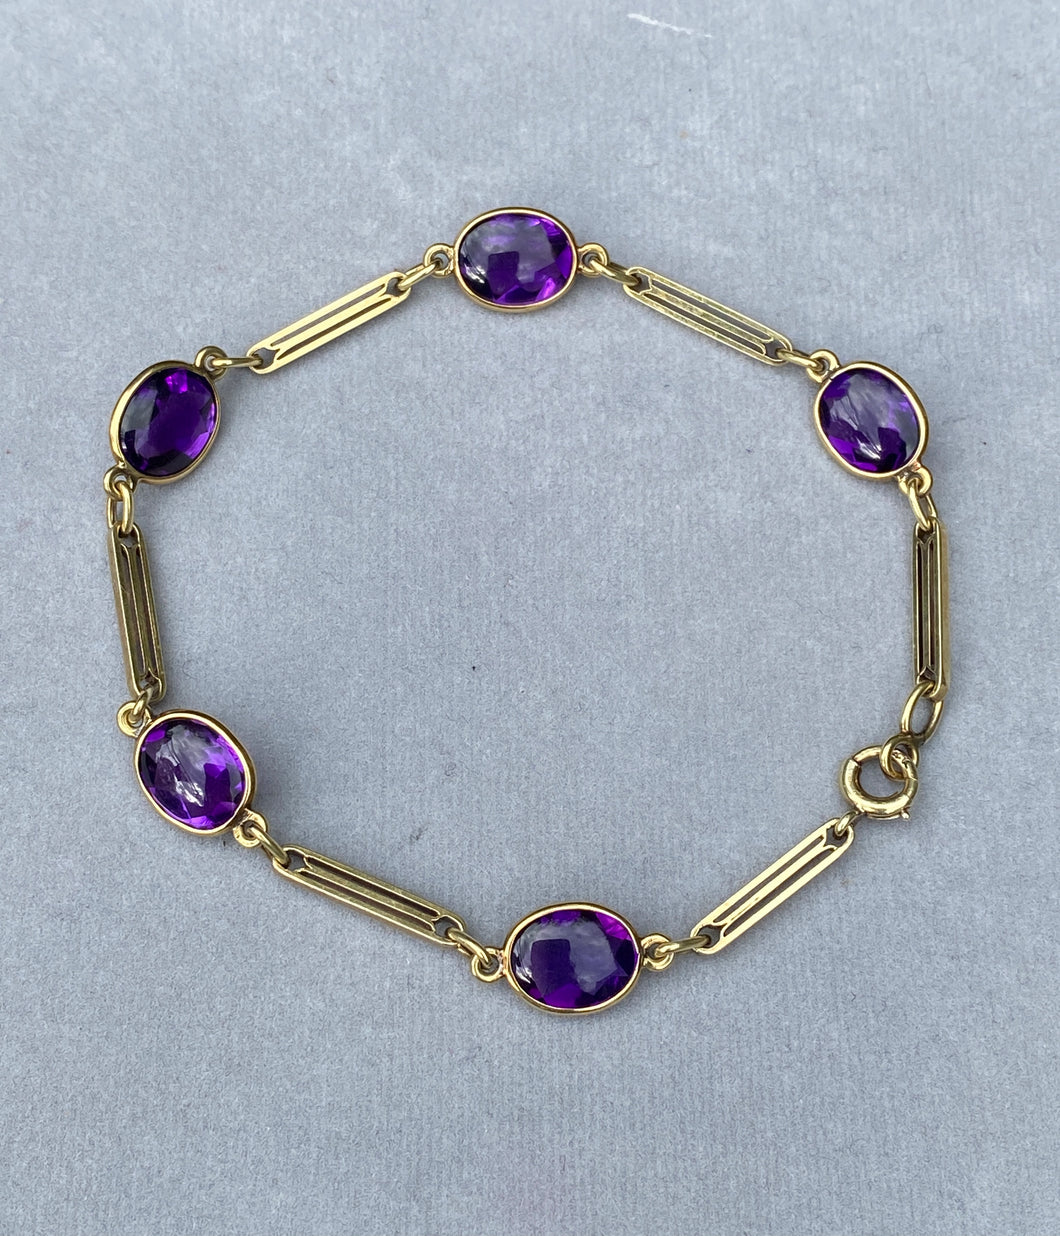 Art Deco 14K Gold Buff Top Amethyst Delicate Bar Bracelet